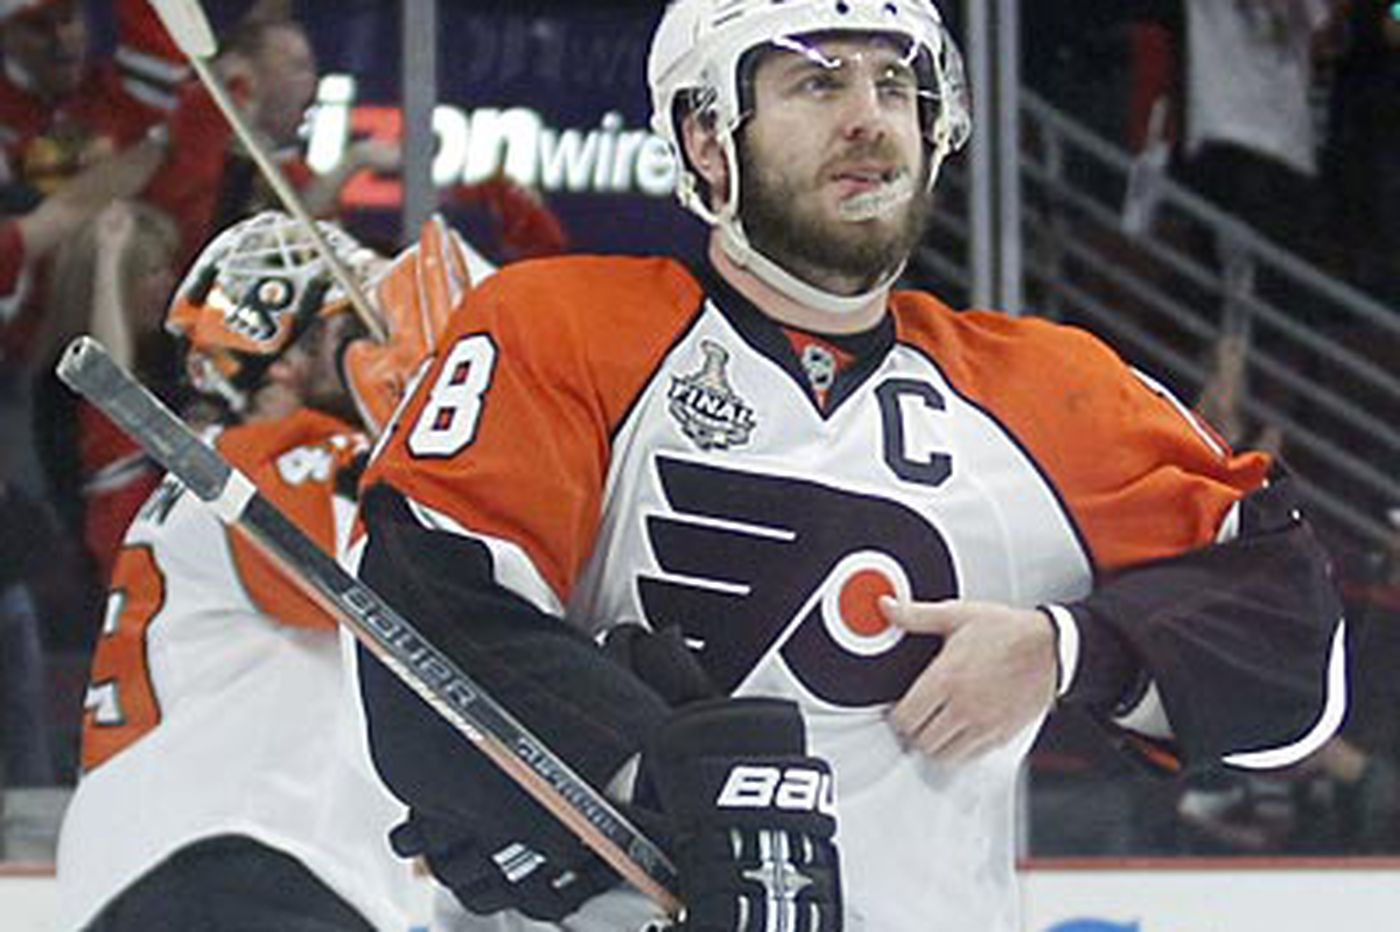 Flyers captain Richards needs to step up